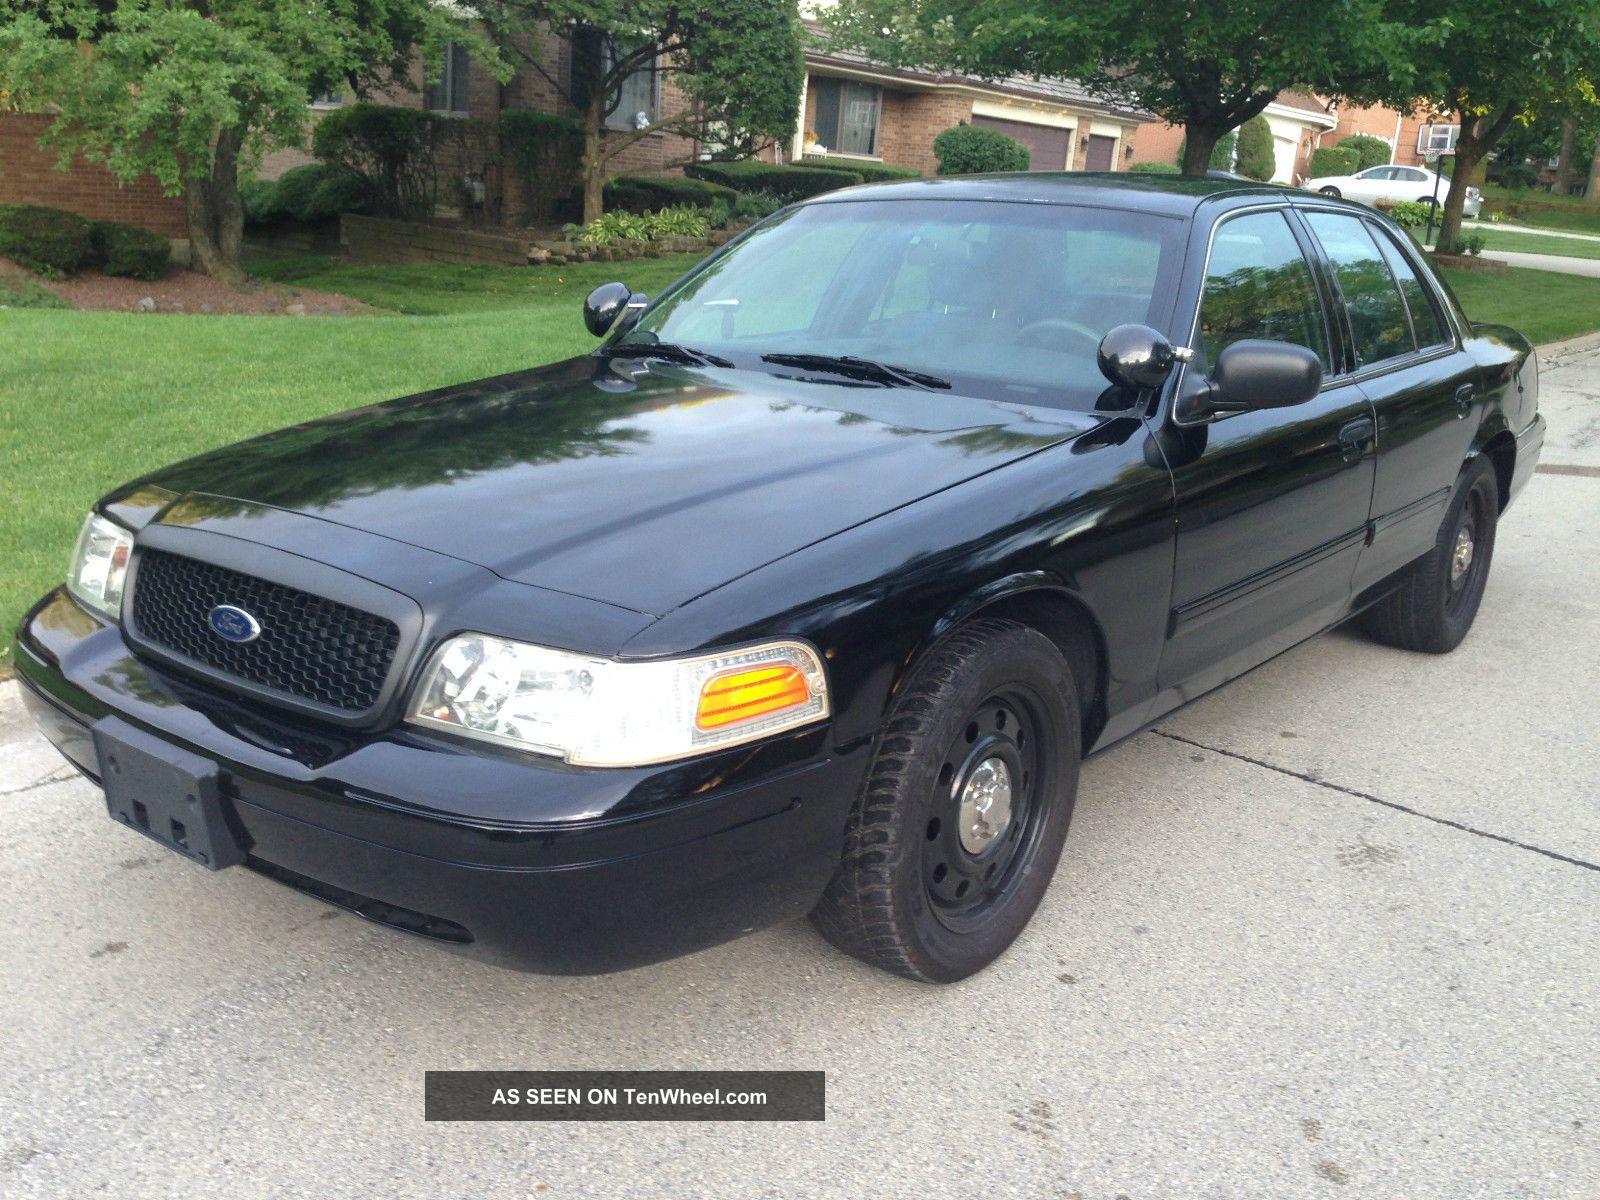 2010 ford crown victoria police interceptor sedan 4 door. Black Bedroom Furniture Sets. Home Design Ideas